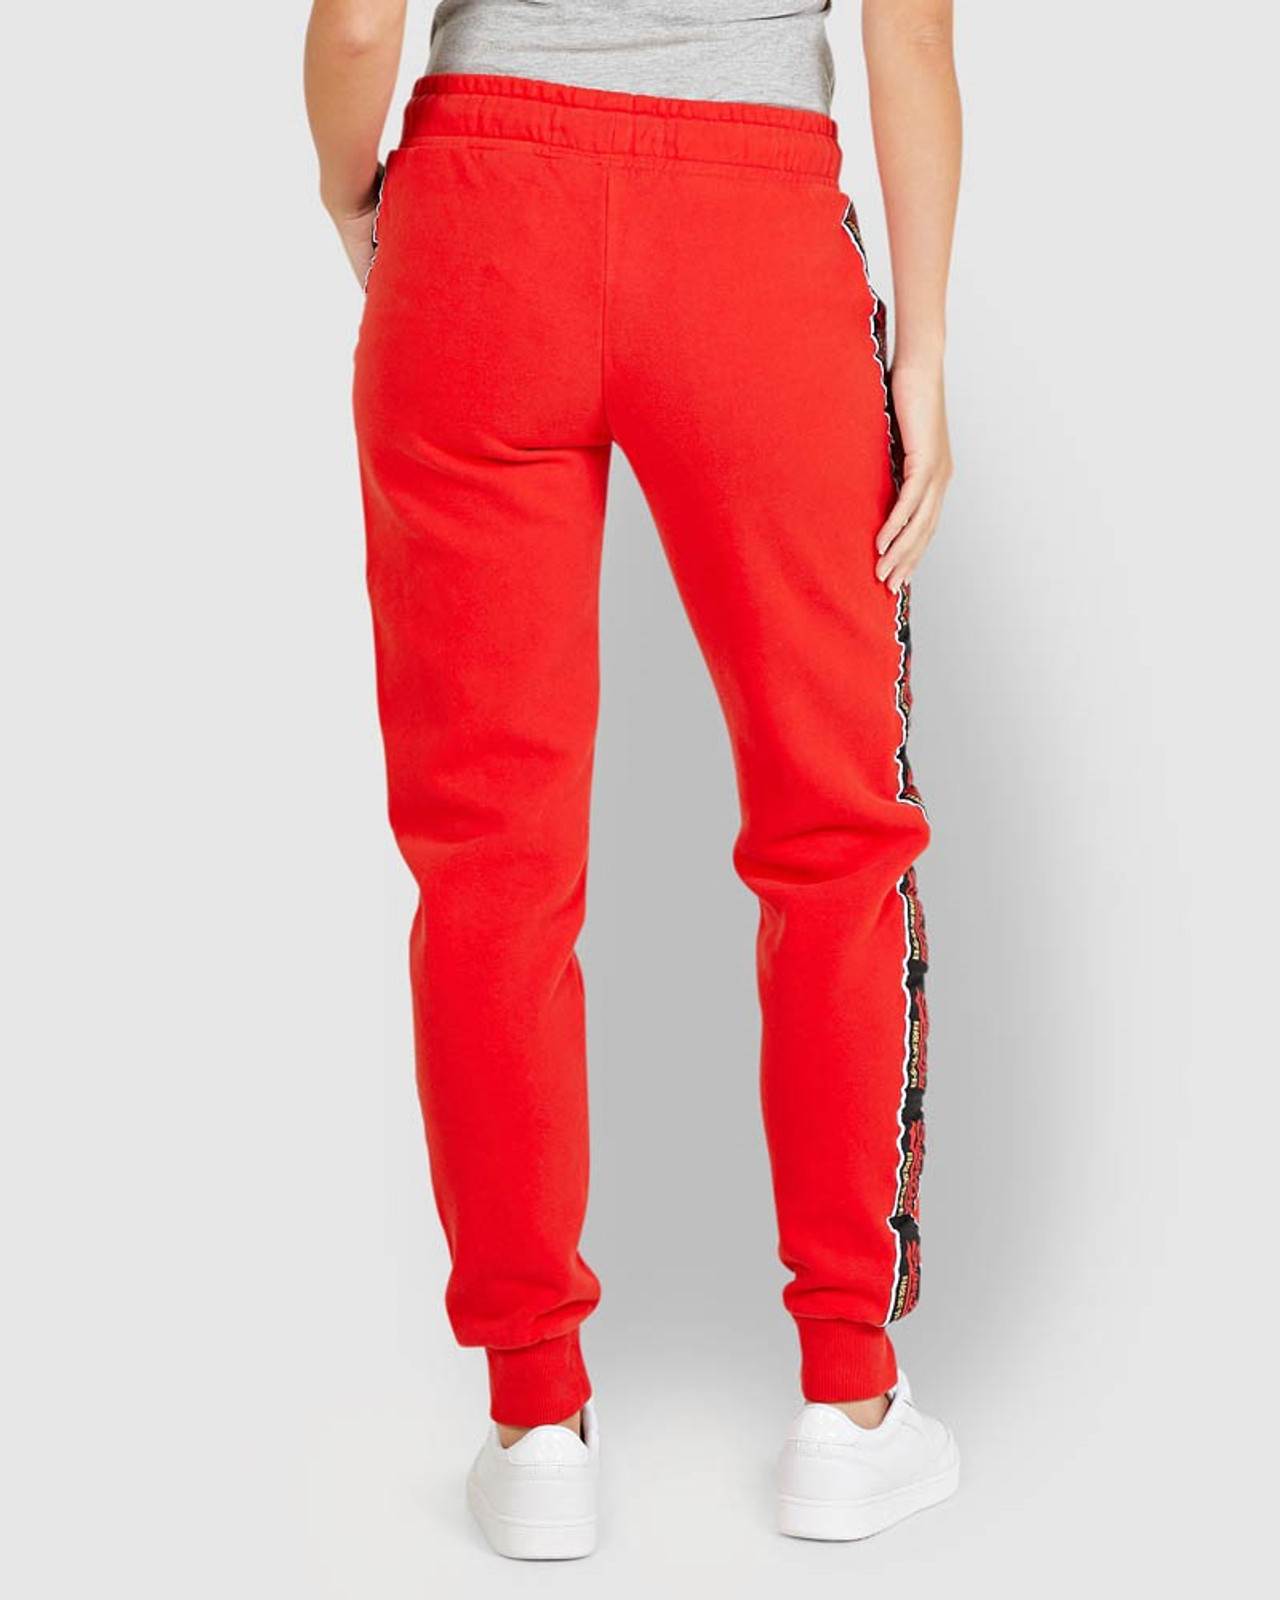 Superdry Womens CNY JOGGER Red Cuffed Joggers 3